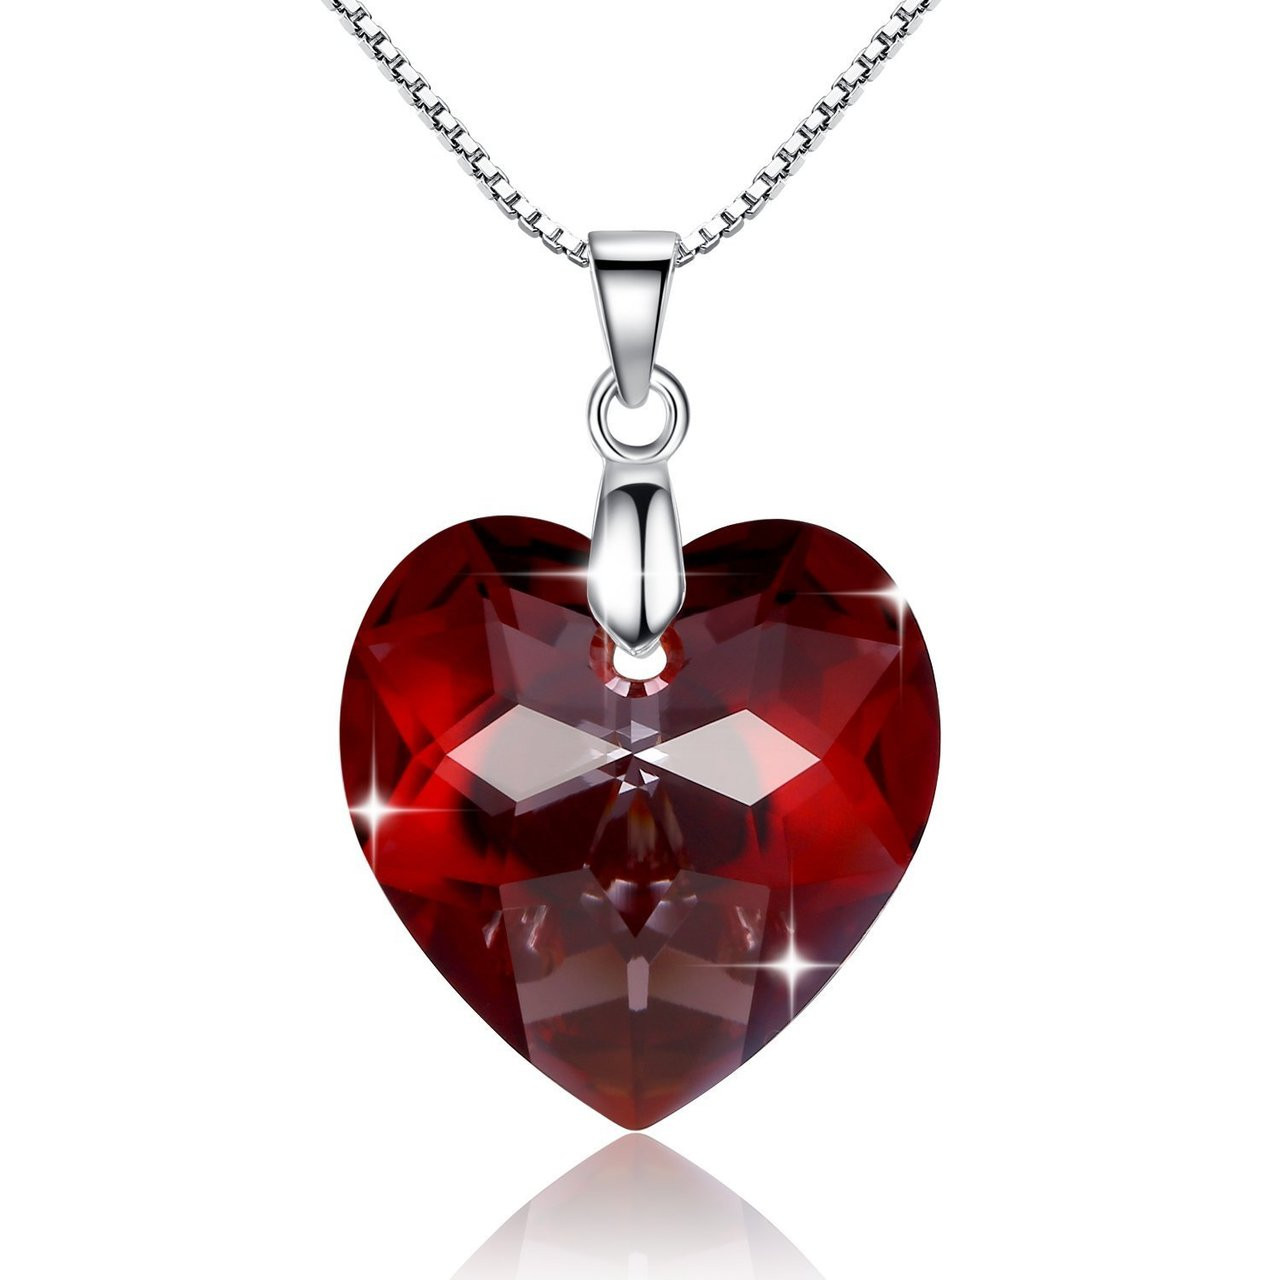 6d760d1aa ... Sterling Silver Necklace Made from Genuine Swarovski Elements ·  Red_Heart_925_Sterling_Silver_Necklace_Made_from_Genuine_Swarovski_Elements_6215_18mm